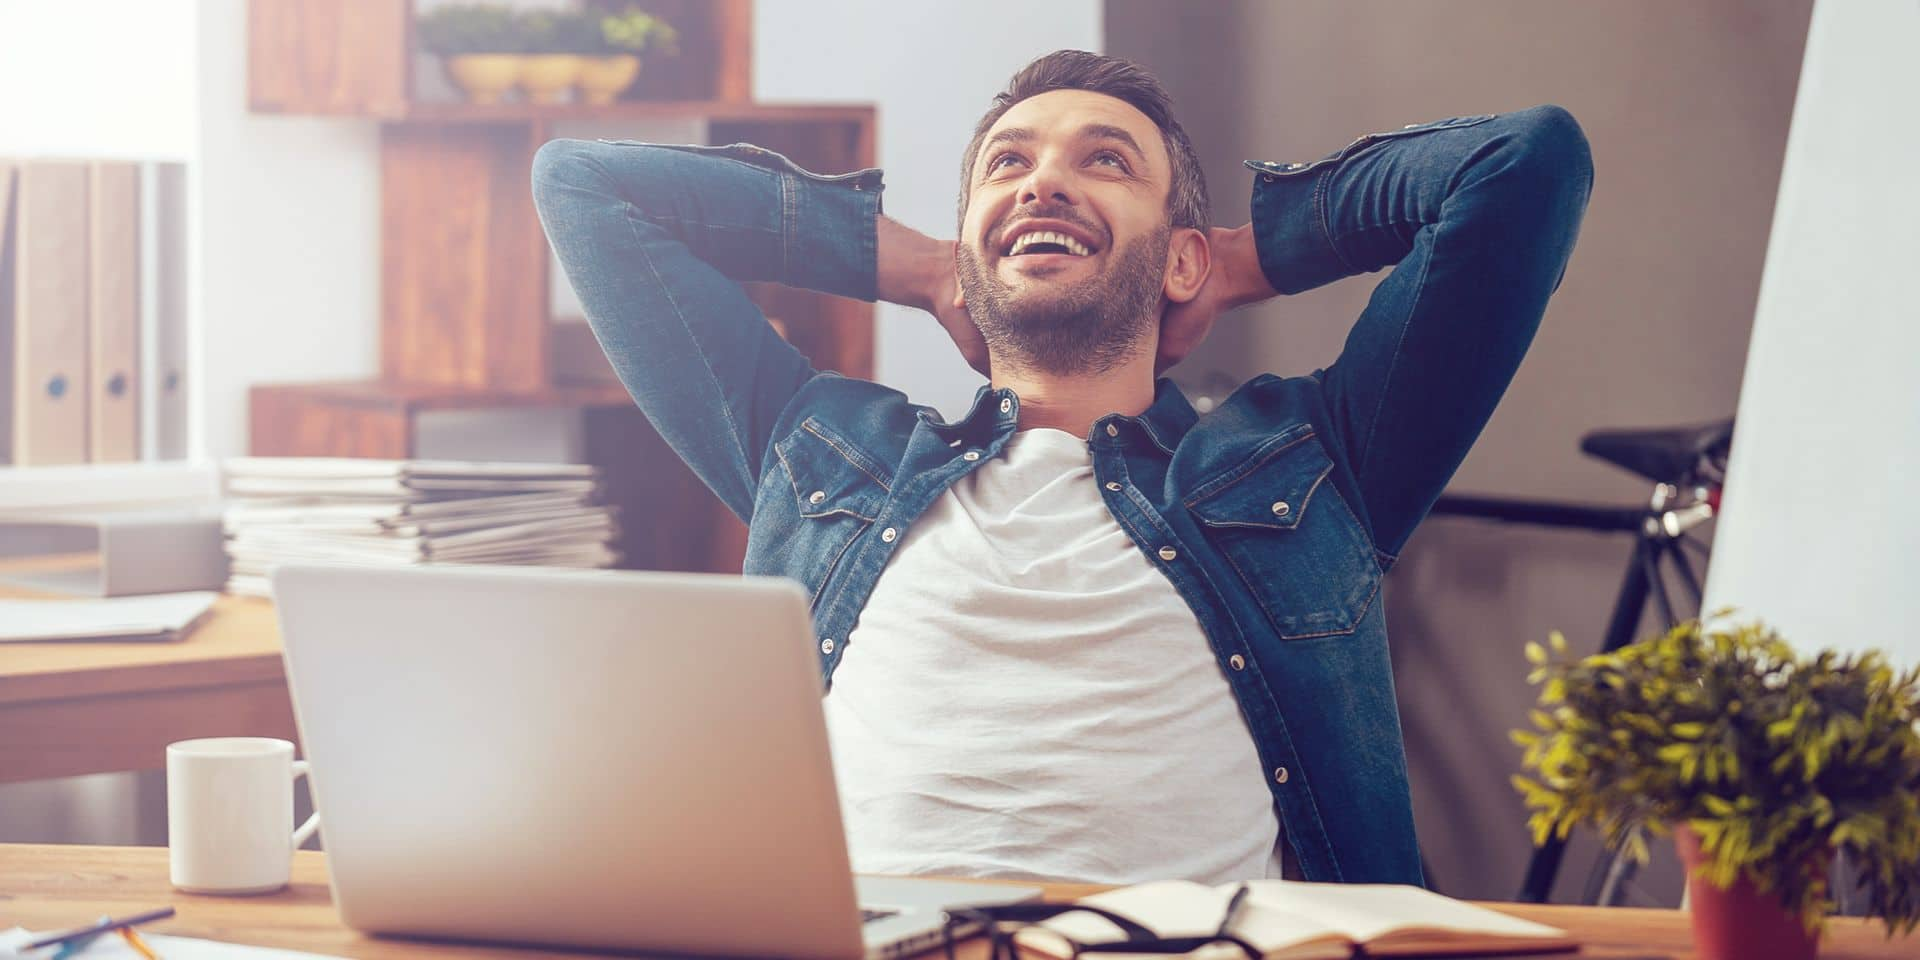 Satisfied,With,Work,Done.,Happy,Young,Man,Working,On,Laptop